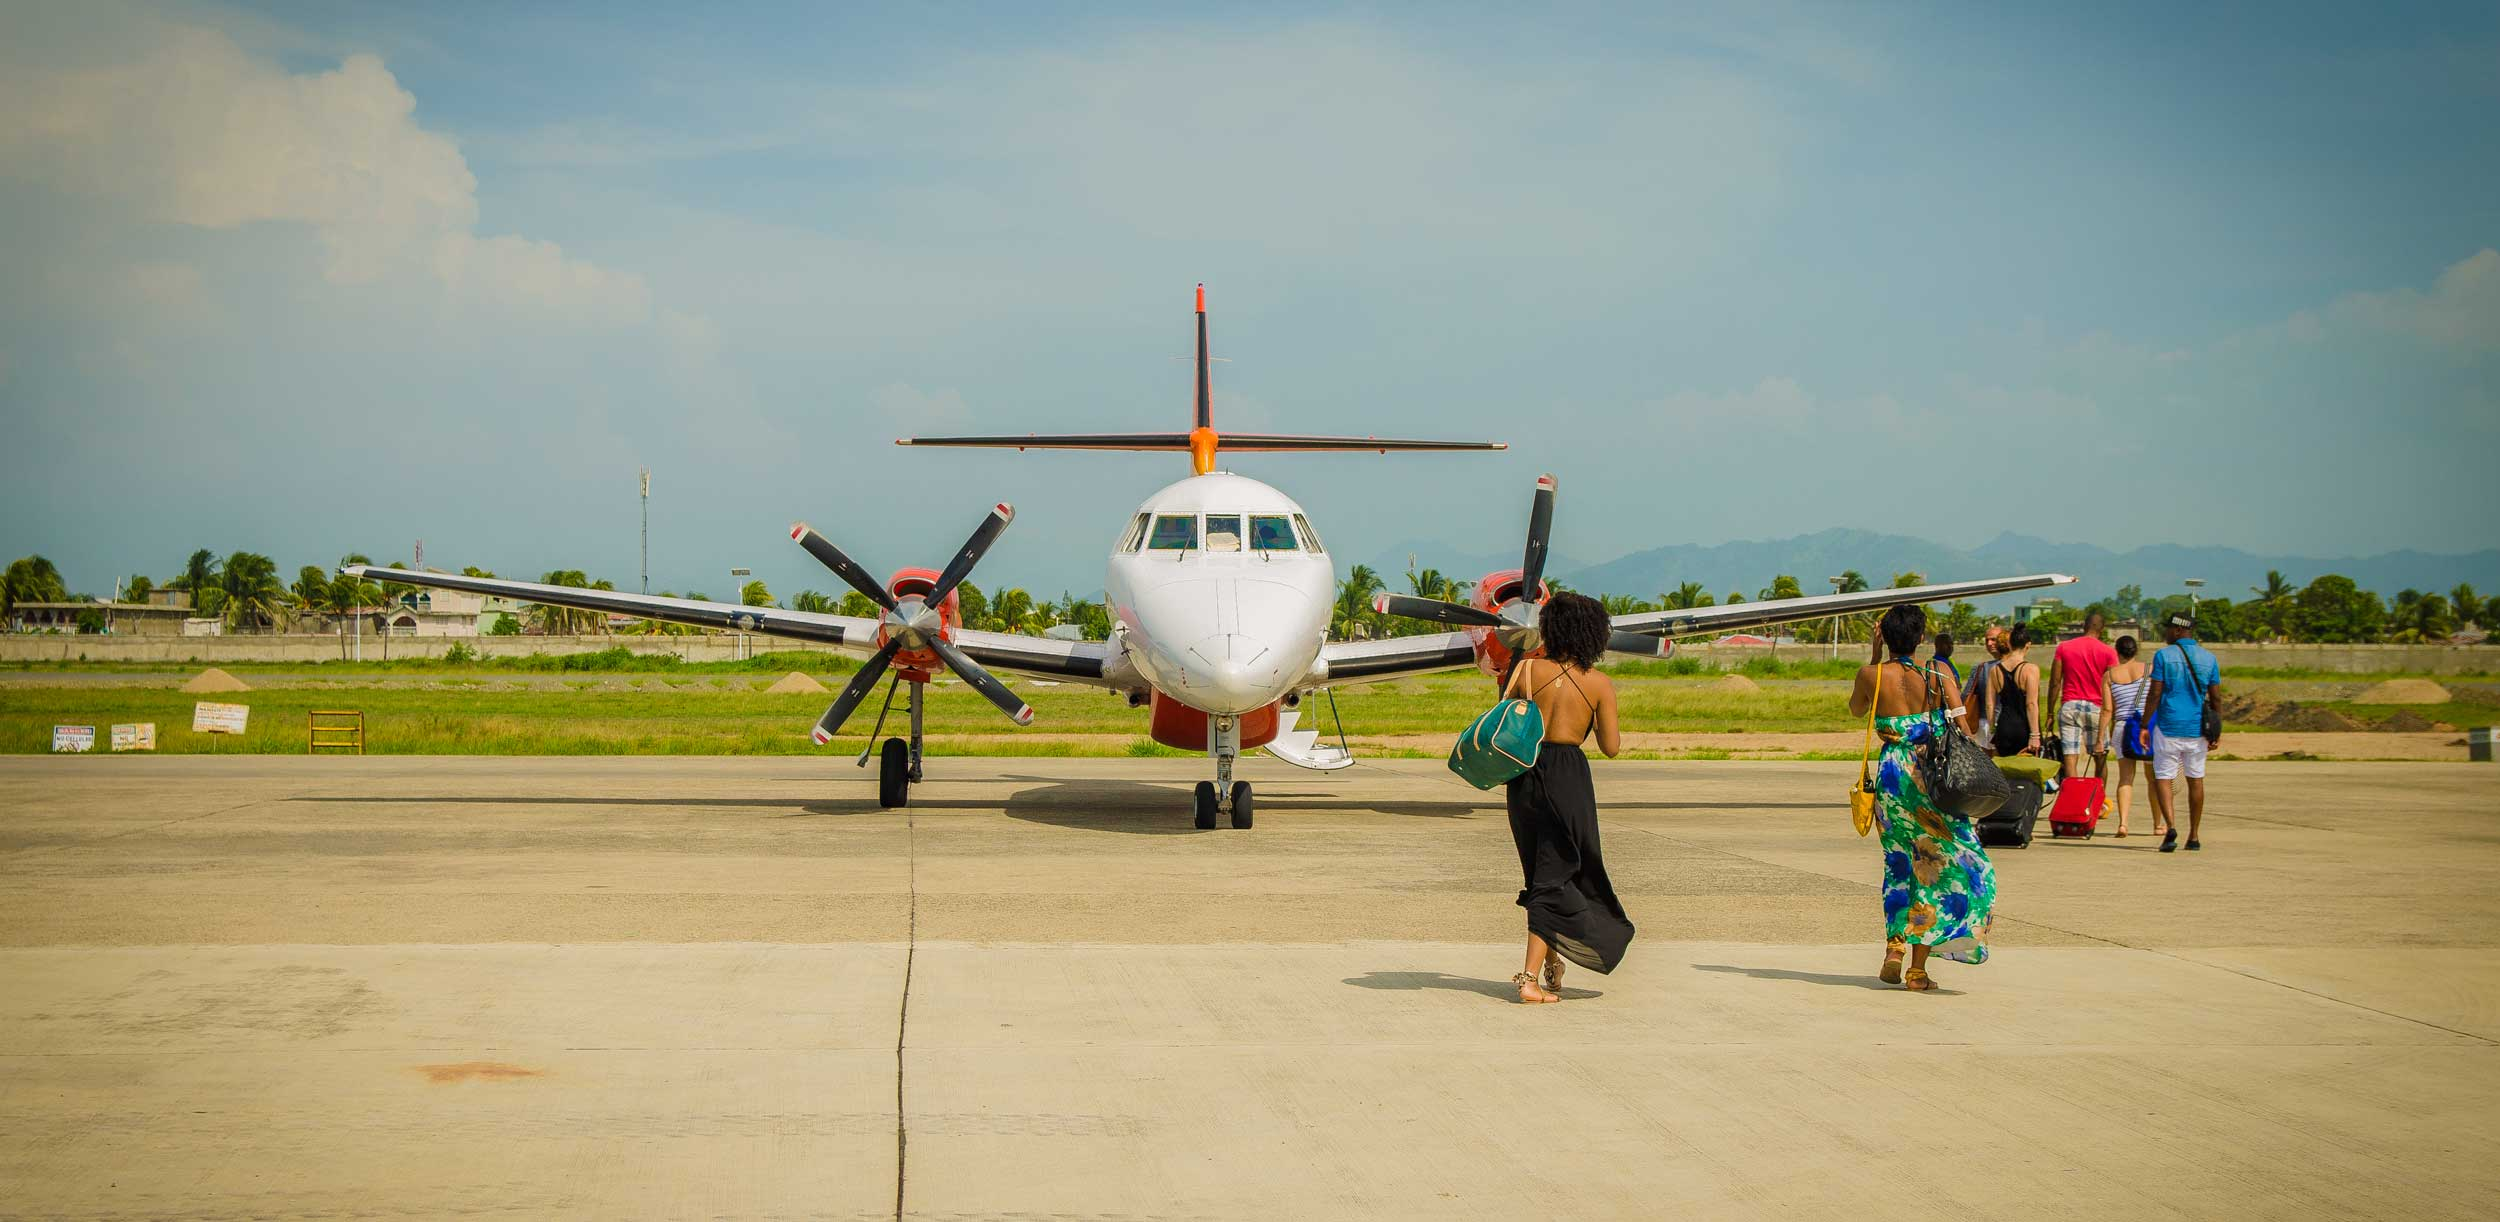 Women in dresses crossing the airstrip to board a plane at Aerogare Guy Malary, Port-au-Prince, Haiti